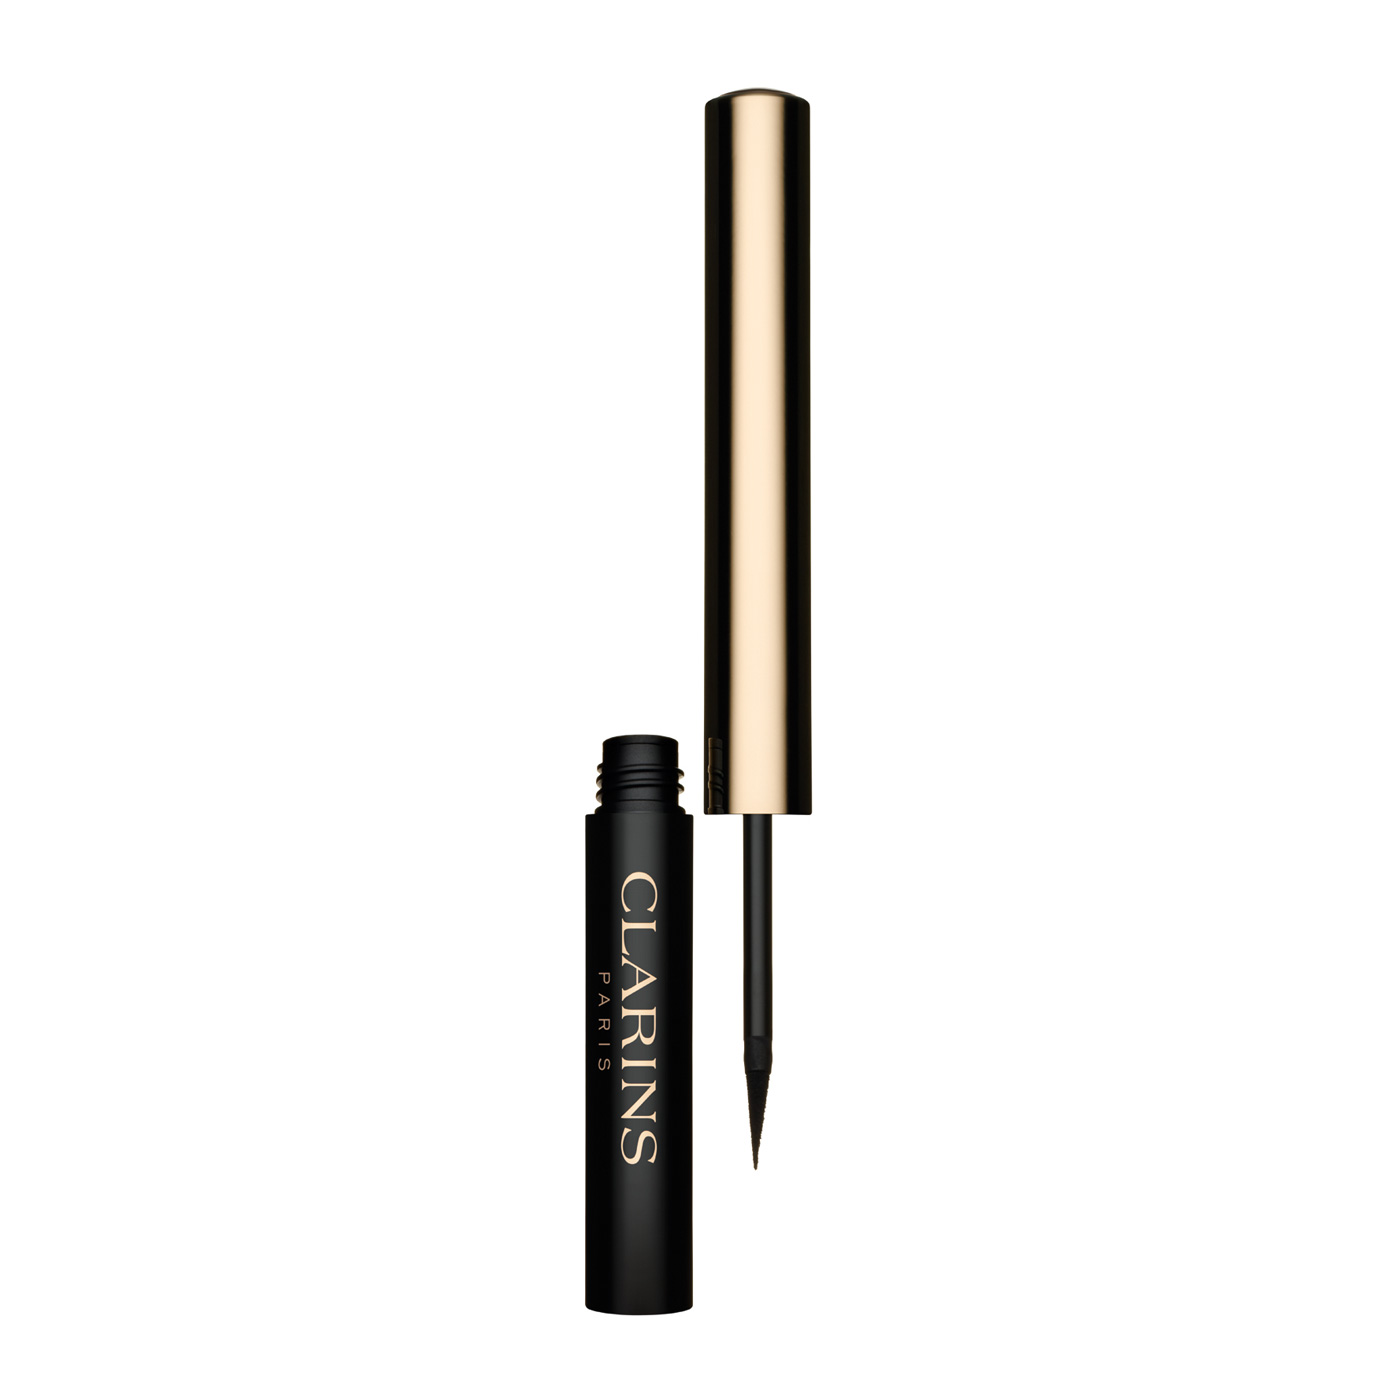 Instant Liner 01 Black - An easy-to-apply liquid eyeliner that ensures a precise, long-lasting line, ideal for enhancing the eyes. This eyeliner Includes a soft, supple foam applicator which delivers just the right amount of product.